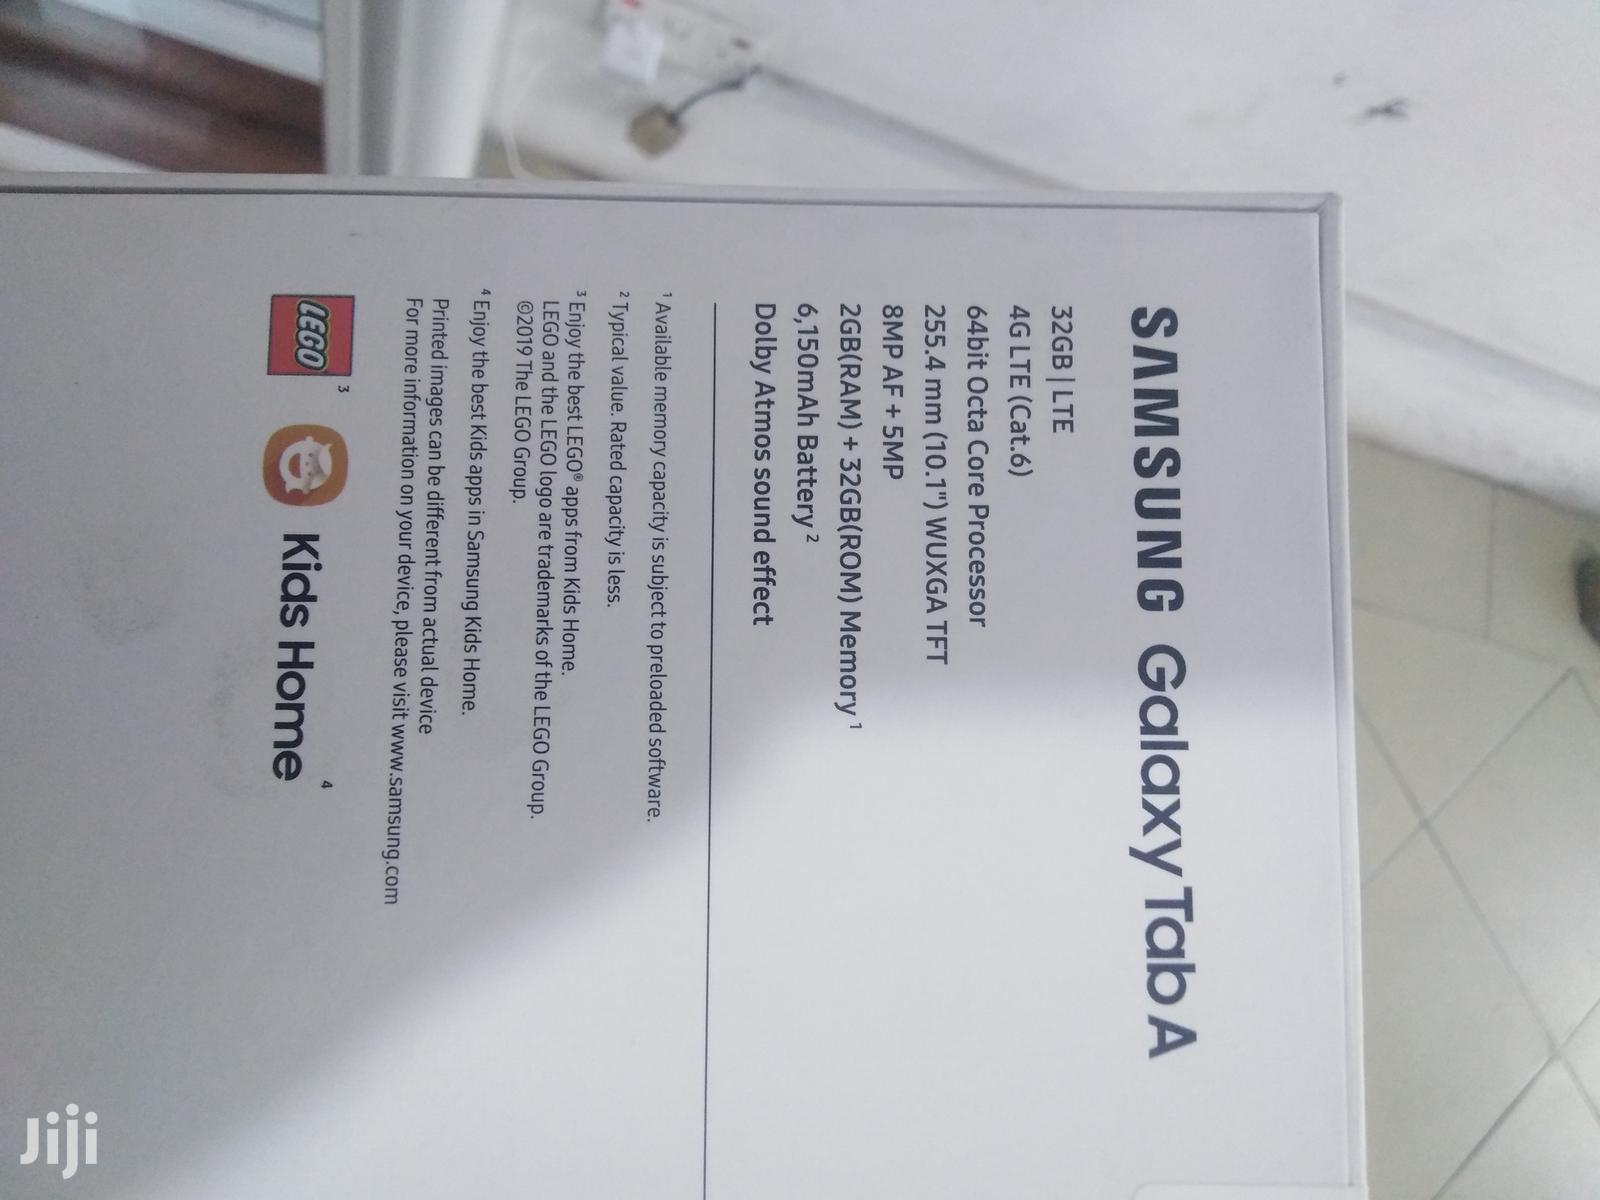 New Samsung Galaxy Tab A 10.1 32 GB | Tablets for sale in Adabraka, Greater Accra, Ghana